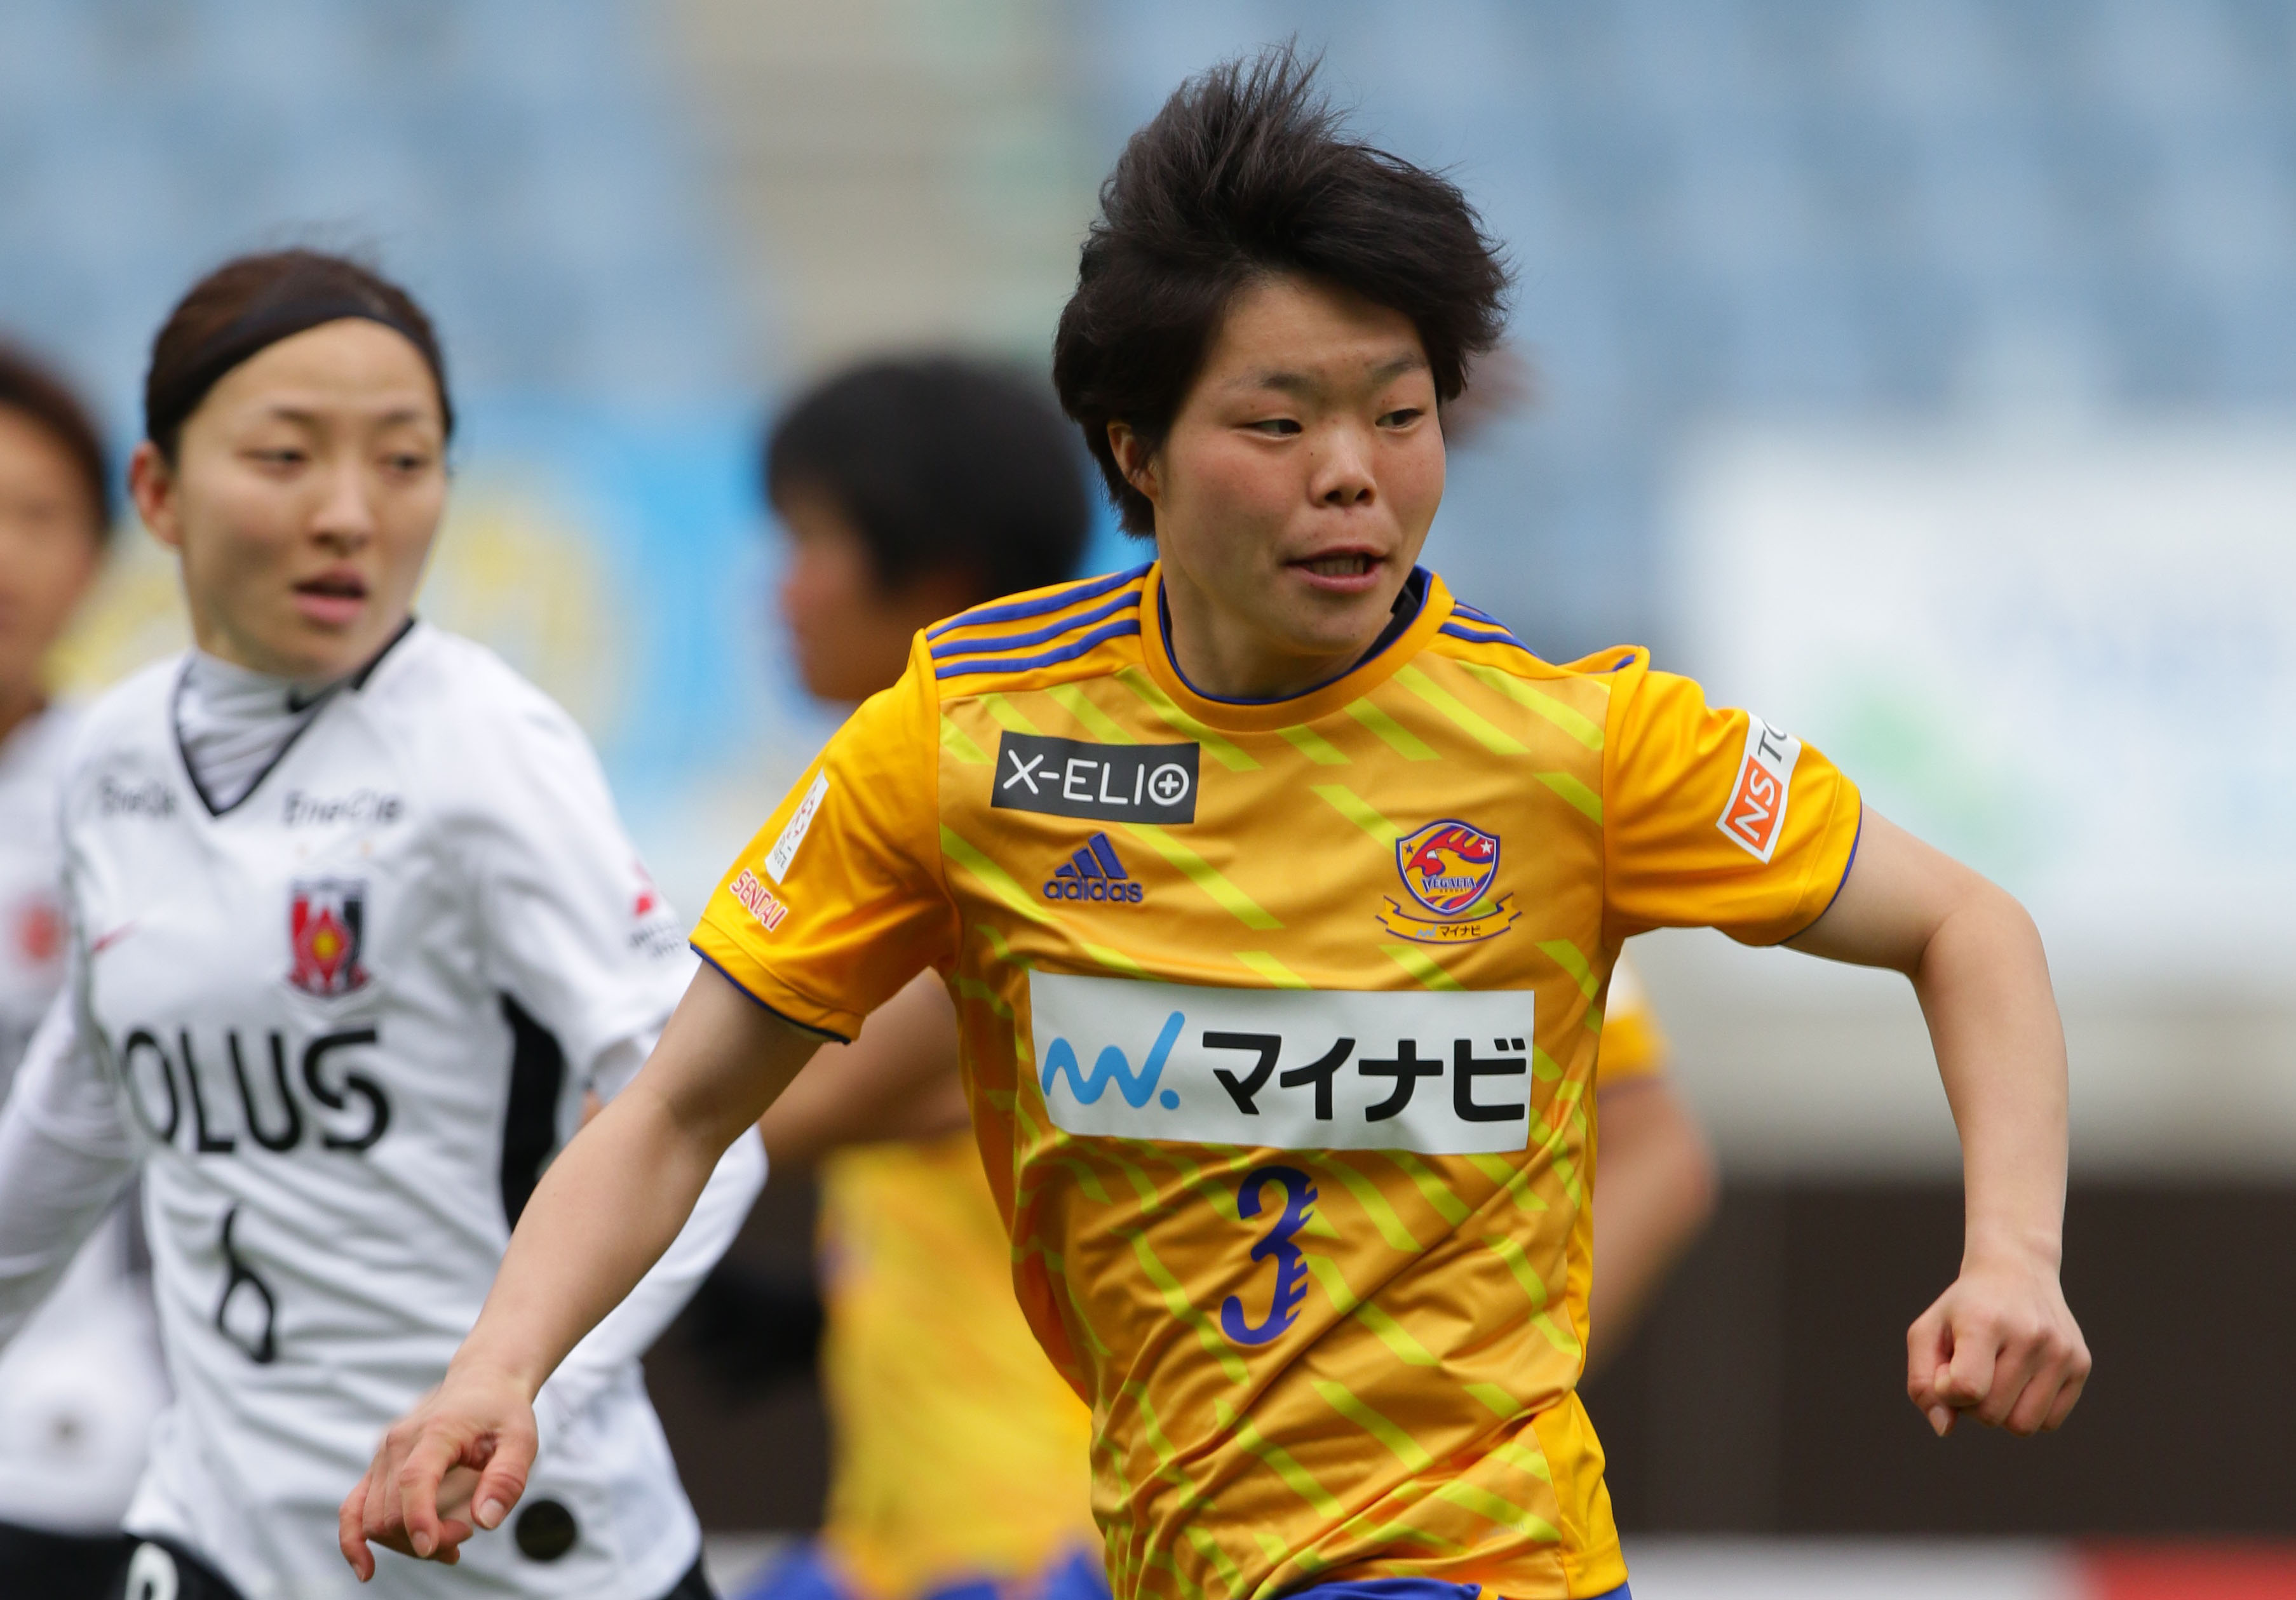 Nana Ichise could be one of the surprises in France at the Women's World Cup